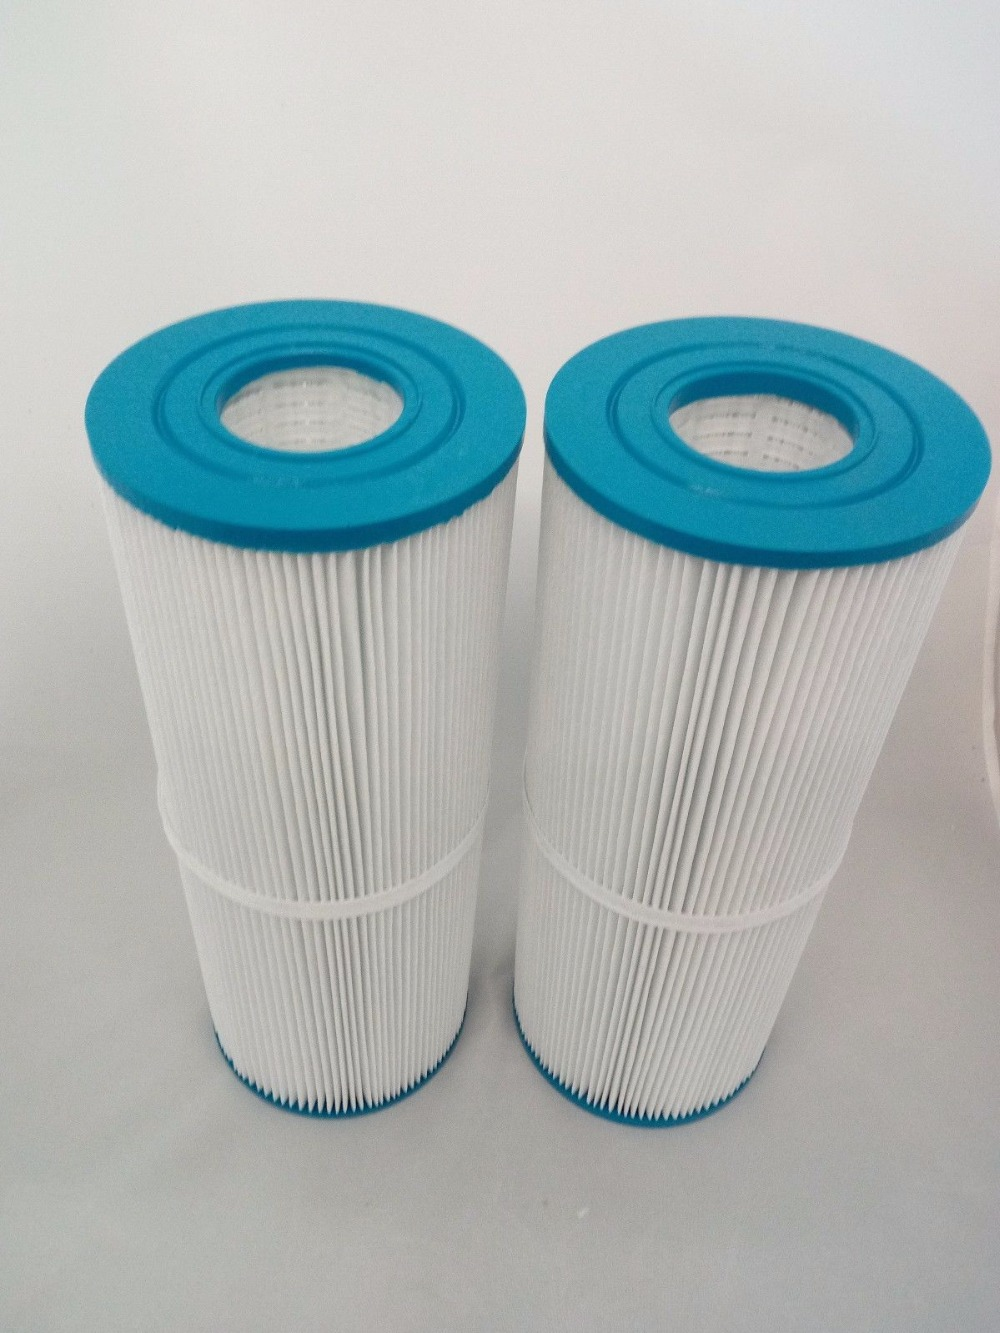 2 PCS spa pool filter 33.6x12.5x5.4cm fit Norway Sweden netherlands switzerland australia hot tubs-in Spa Tubs from Home Improvement    1